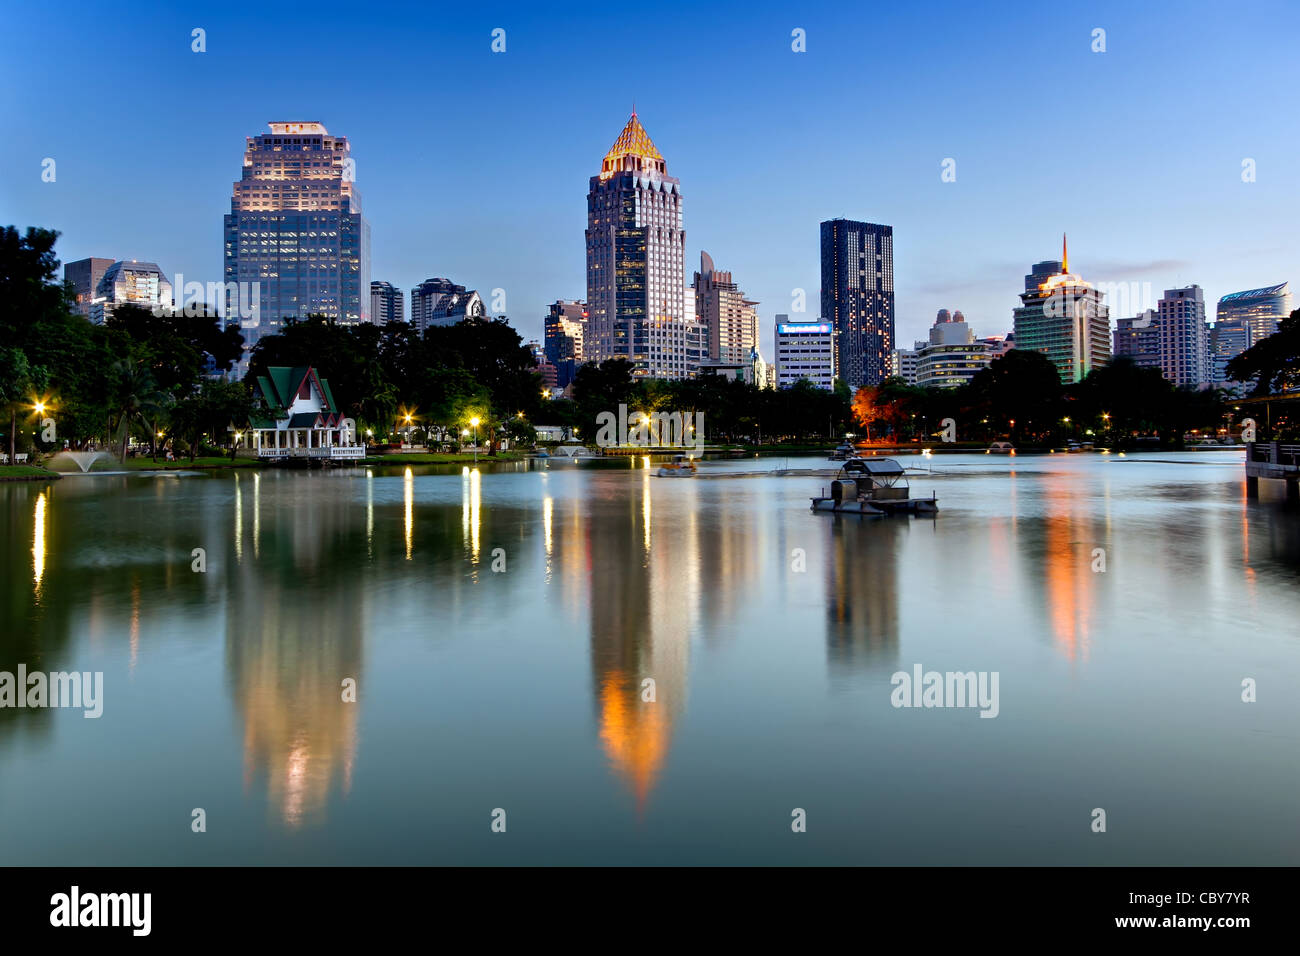 View towards Silom & Rama IV Road from Lumpini Park at Dusk, Bangkok. - Stock Image